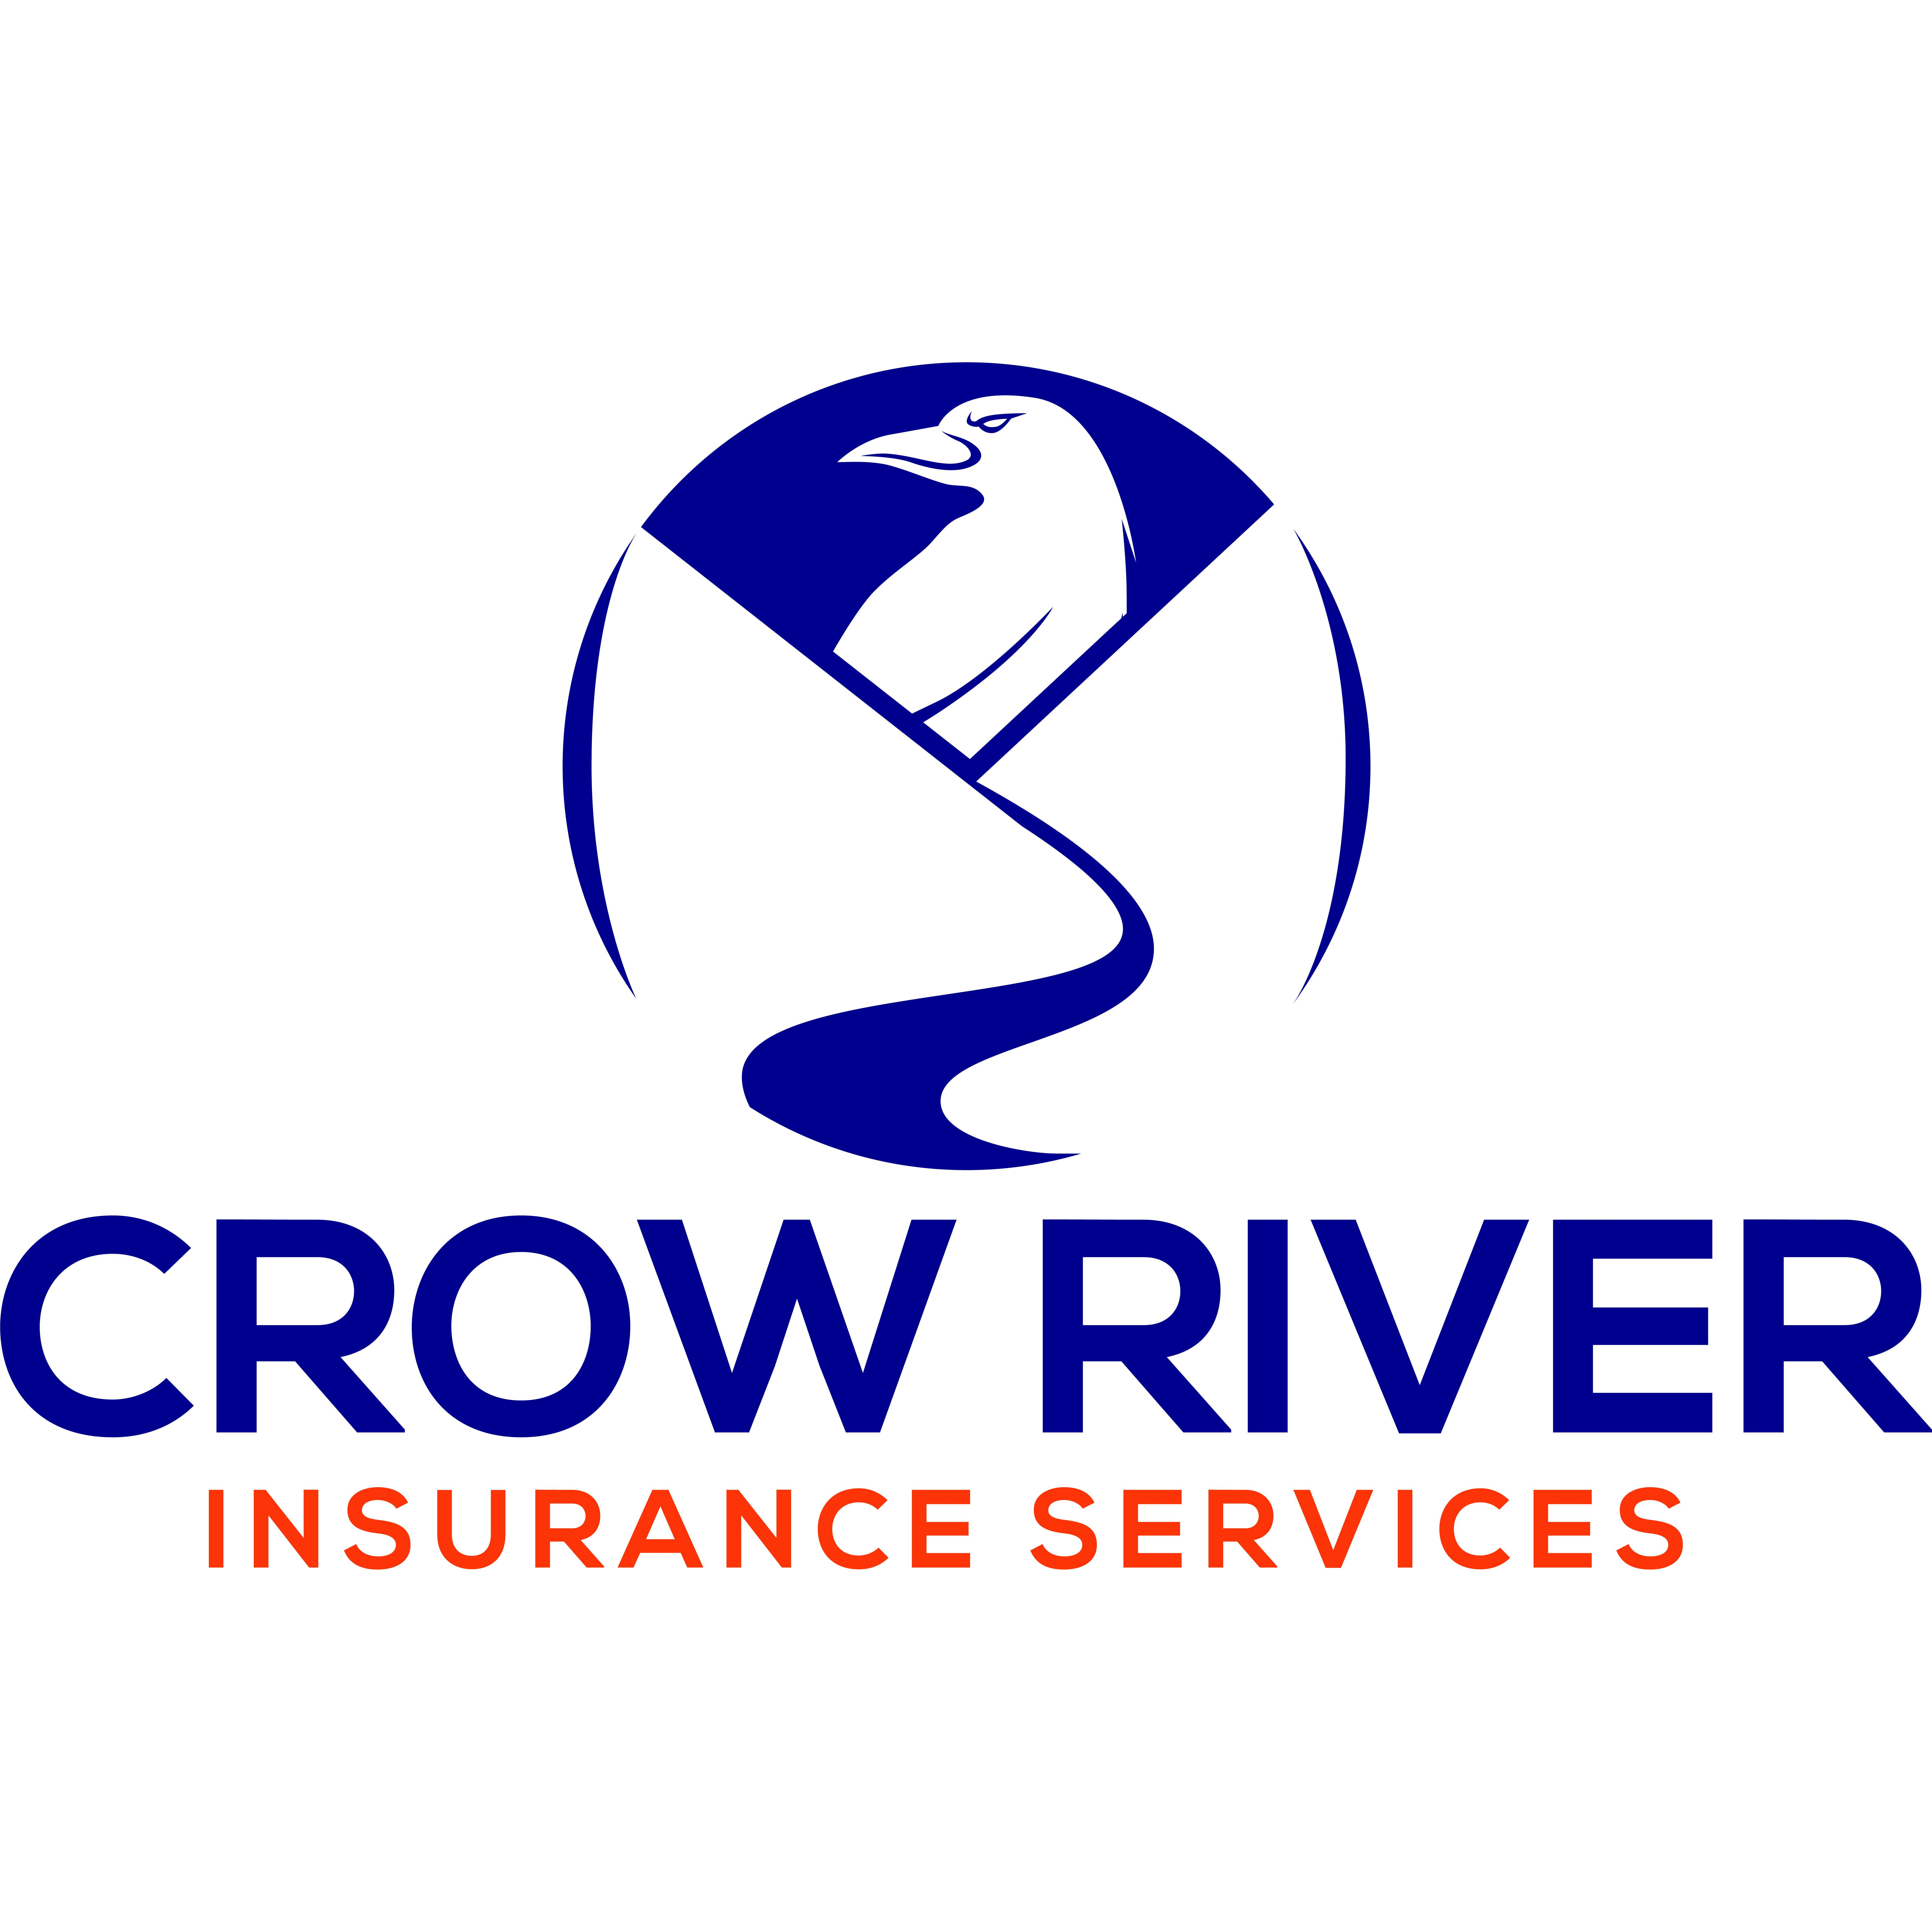 Crow River Insurance Services